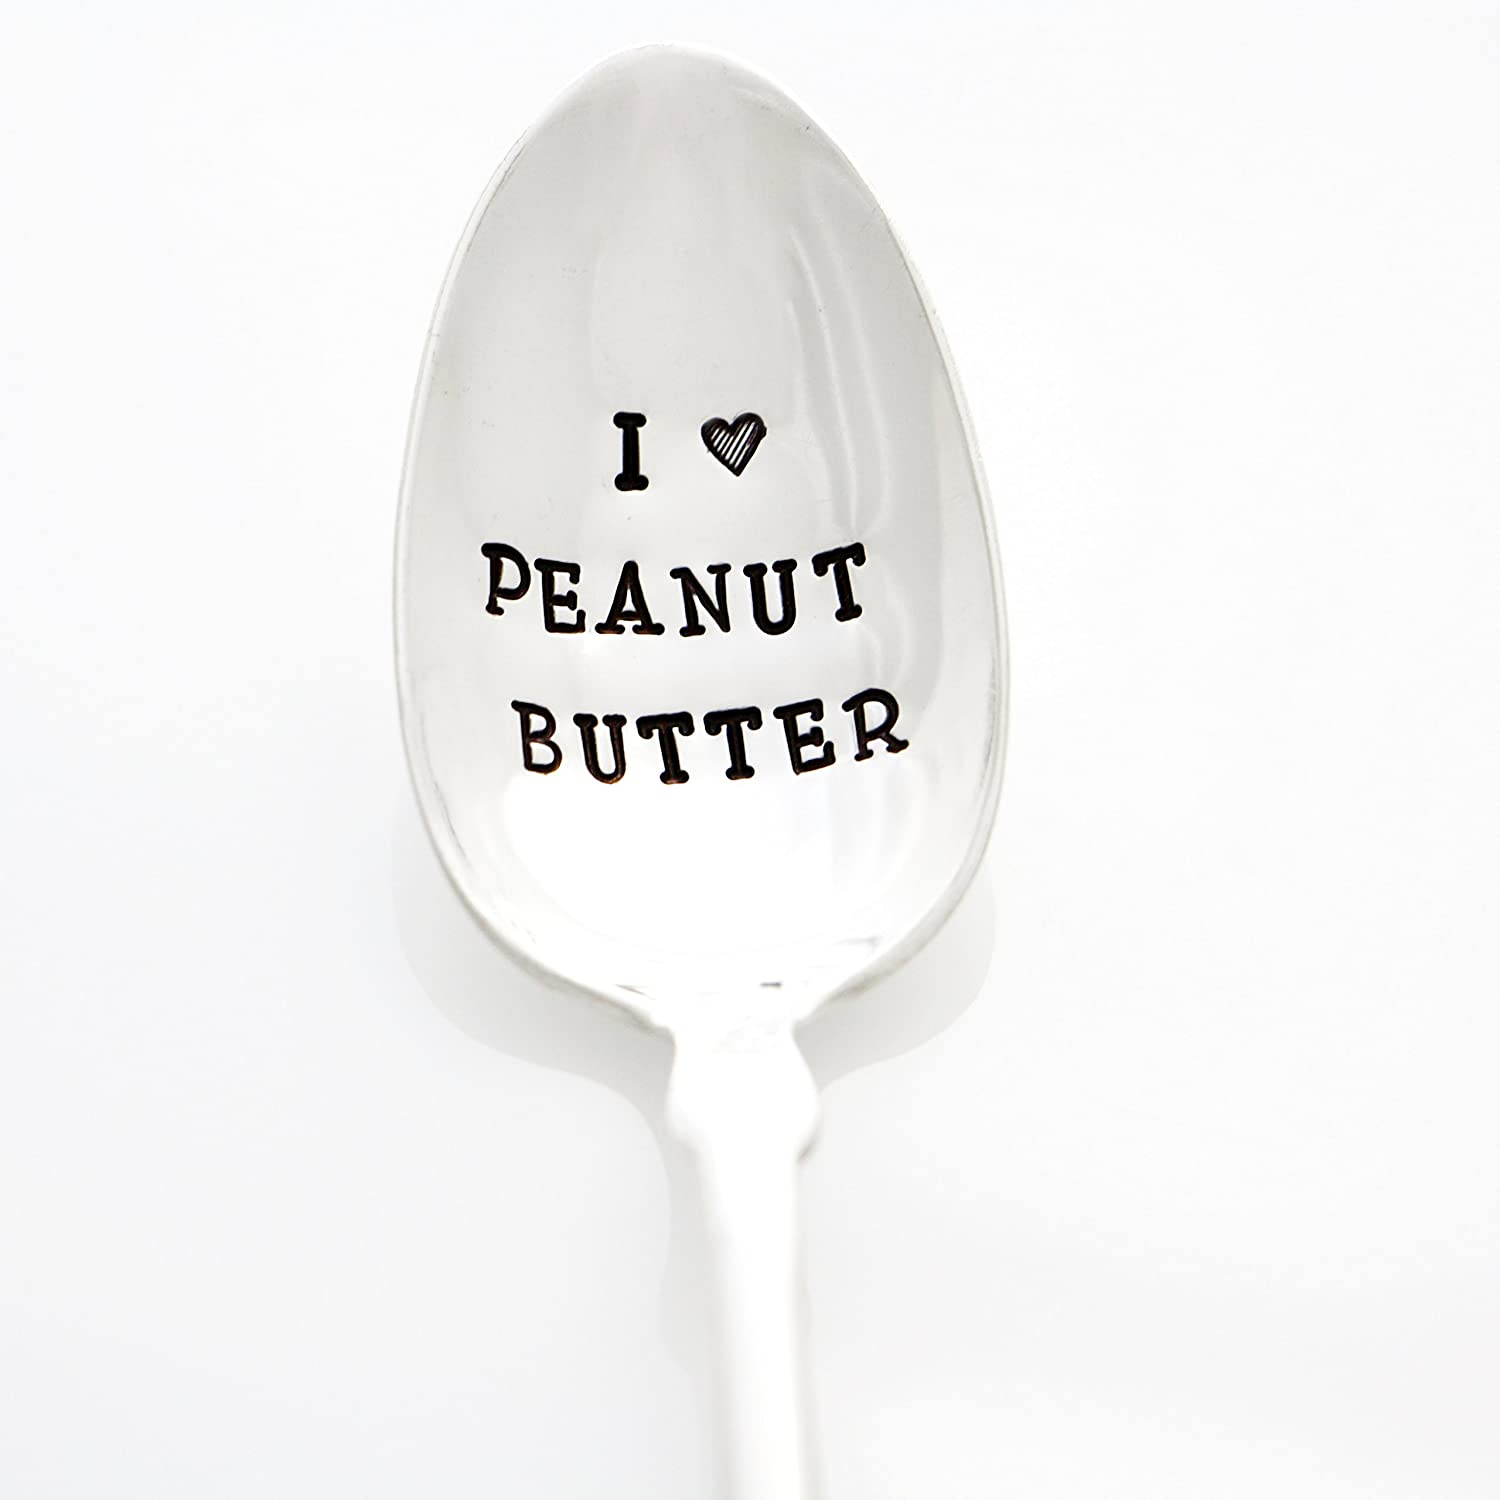 Peanut Butter Spoon. I Heart Peanut Butter. Hand Stamped Silverware for Peanut Butter Lovers. Part of the Martha Stewart American Made Market.